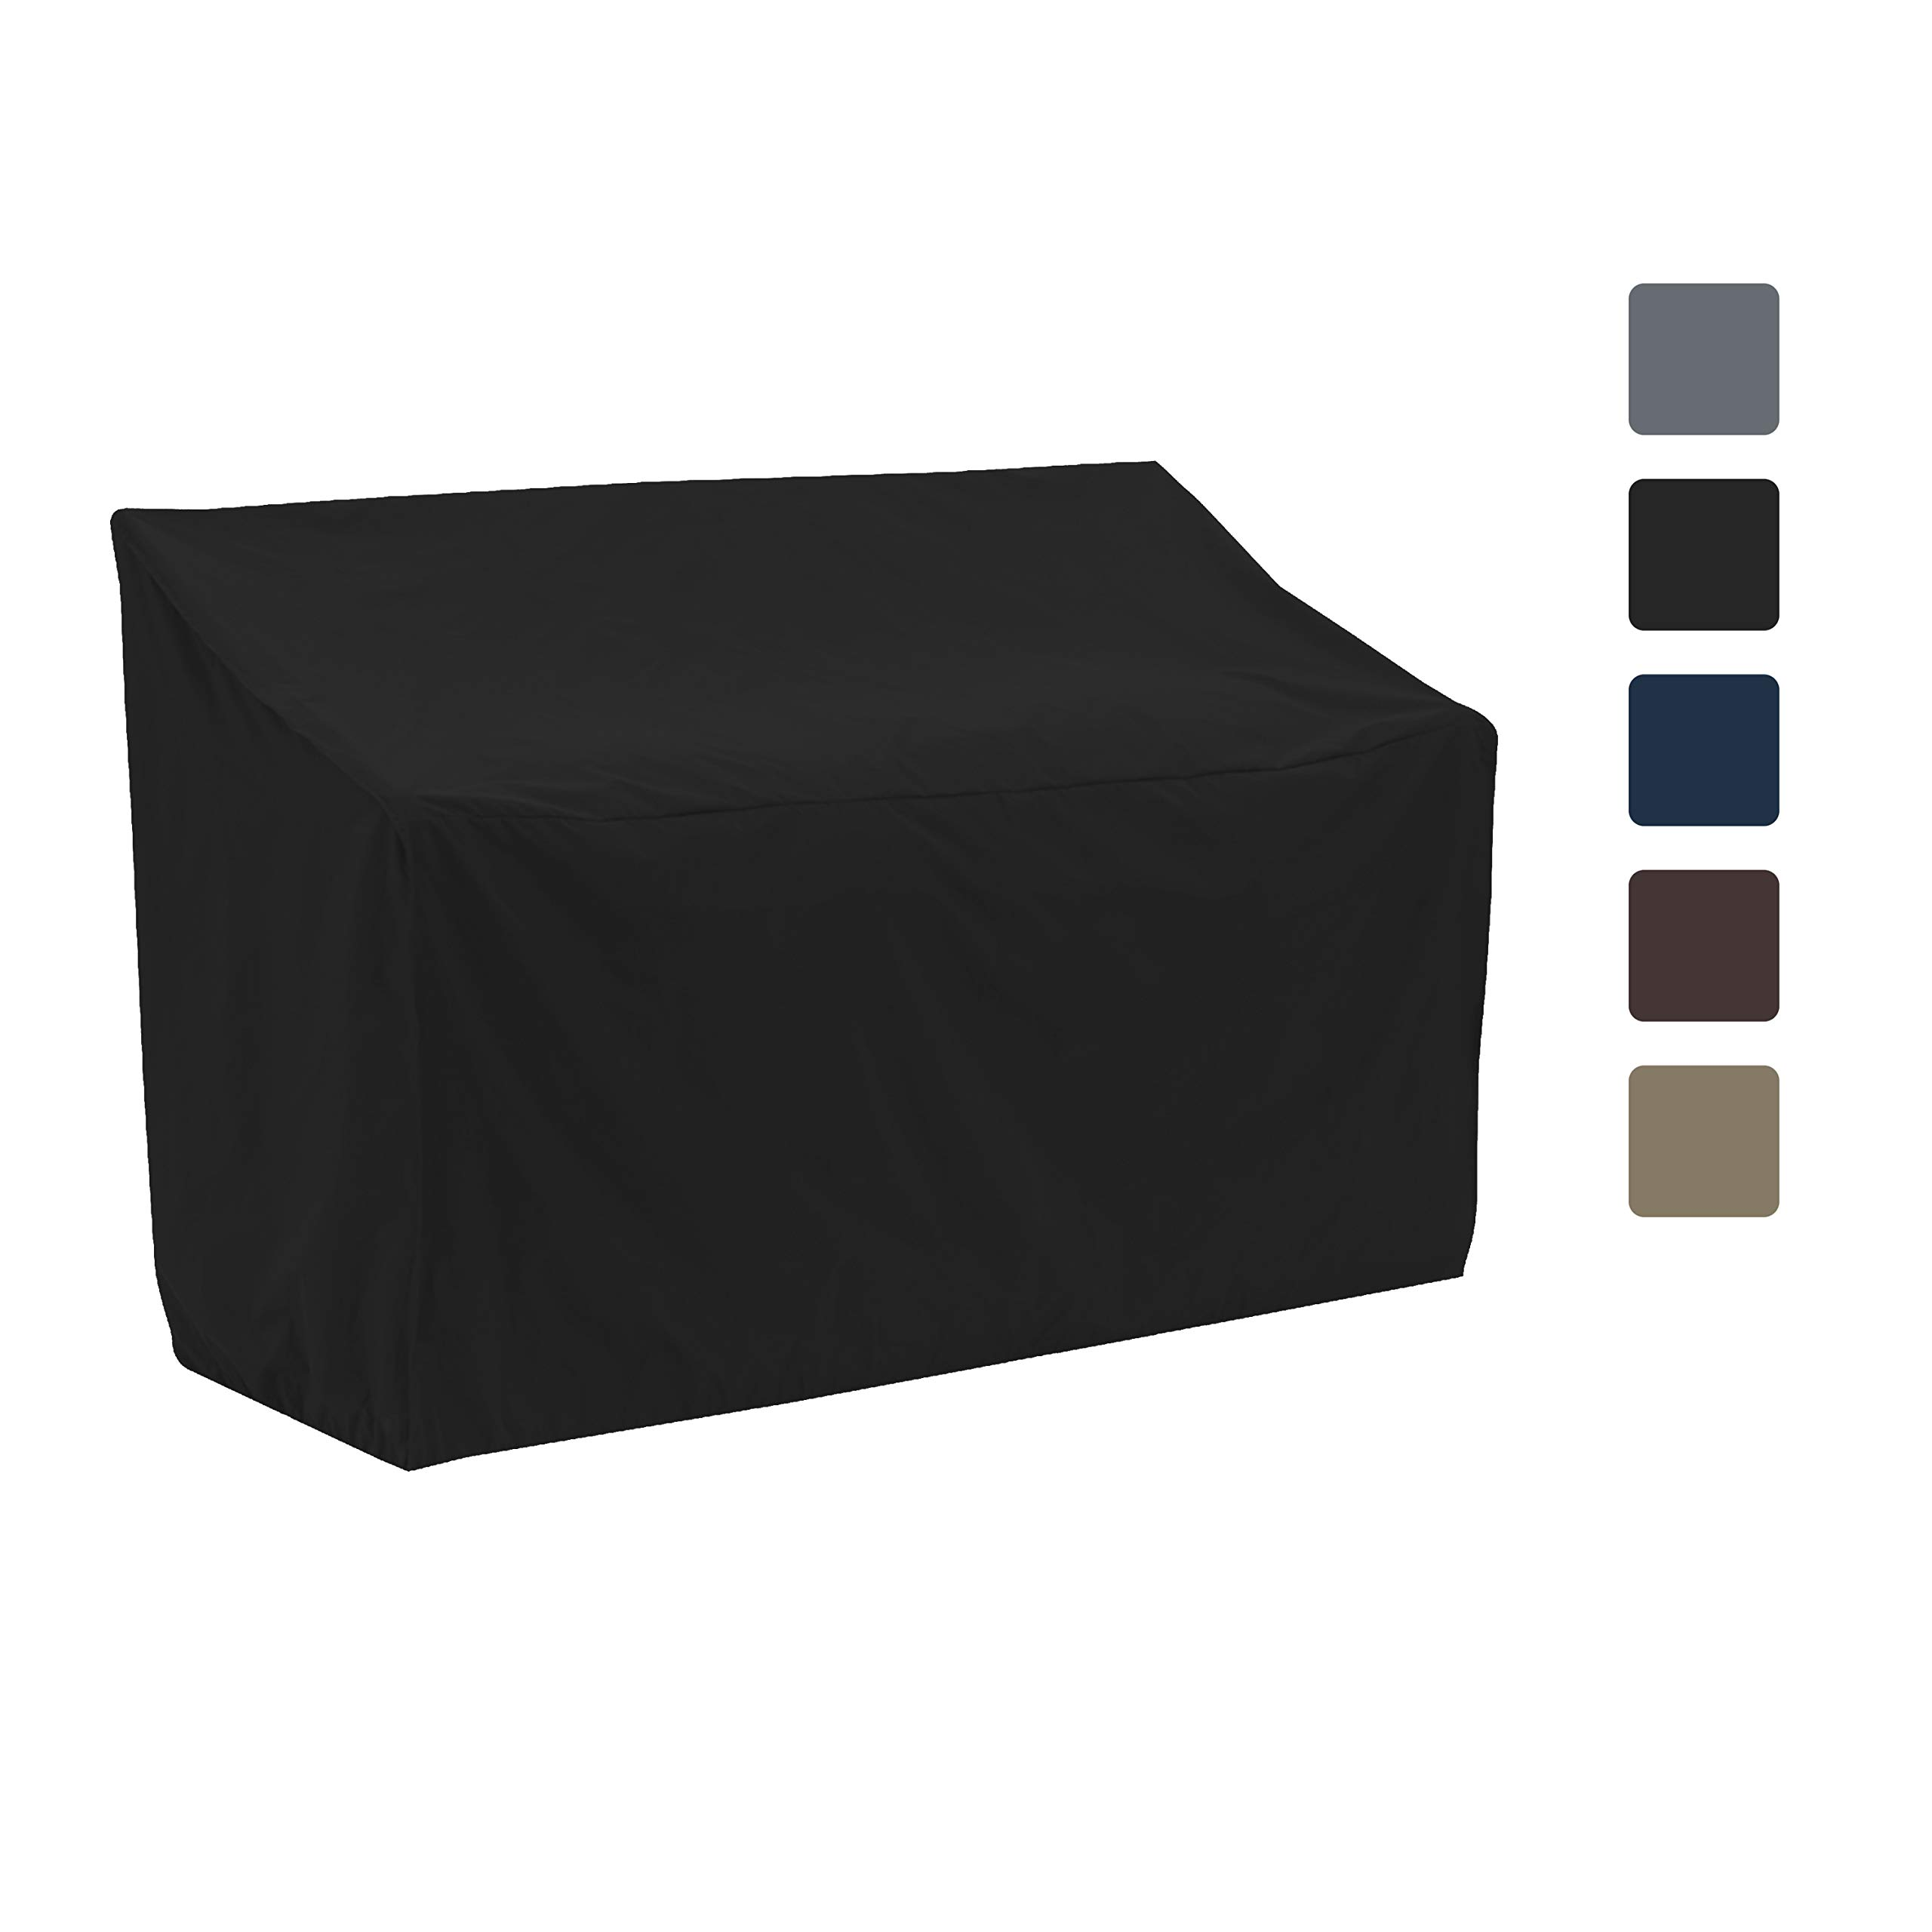 COVERS & ALL Bench Cover 12 Oz Waterproof - 100% UV & Weather Resistant Customizable Bench Seat Cover with Air Pockets and Drawstring for Snug Fit (60'' X 28.5'' X 30'', Black)